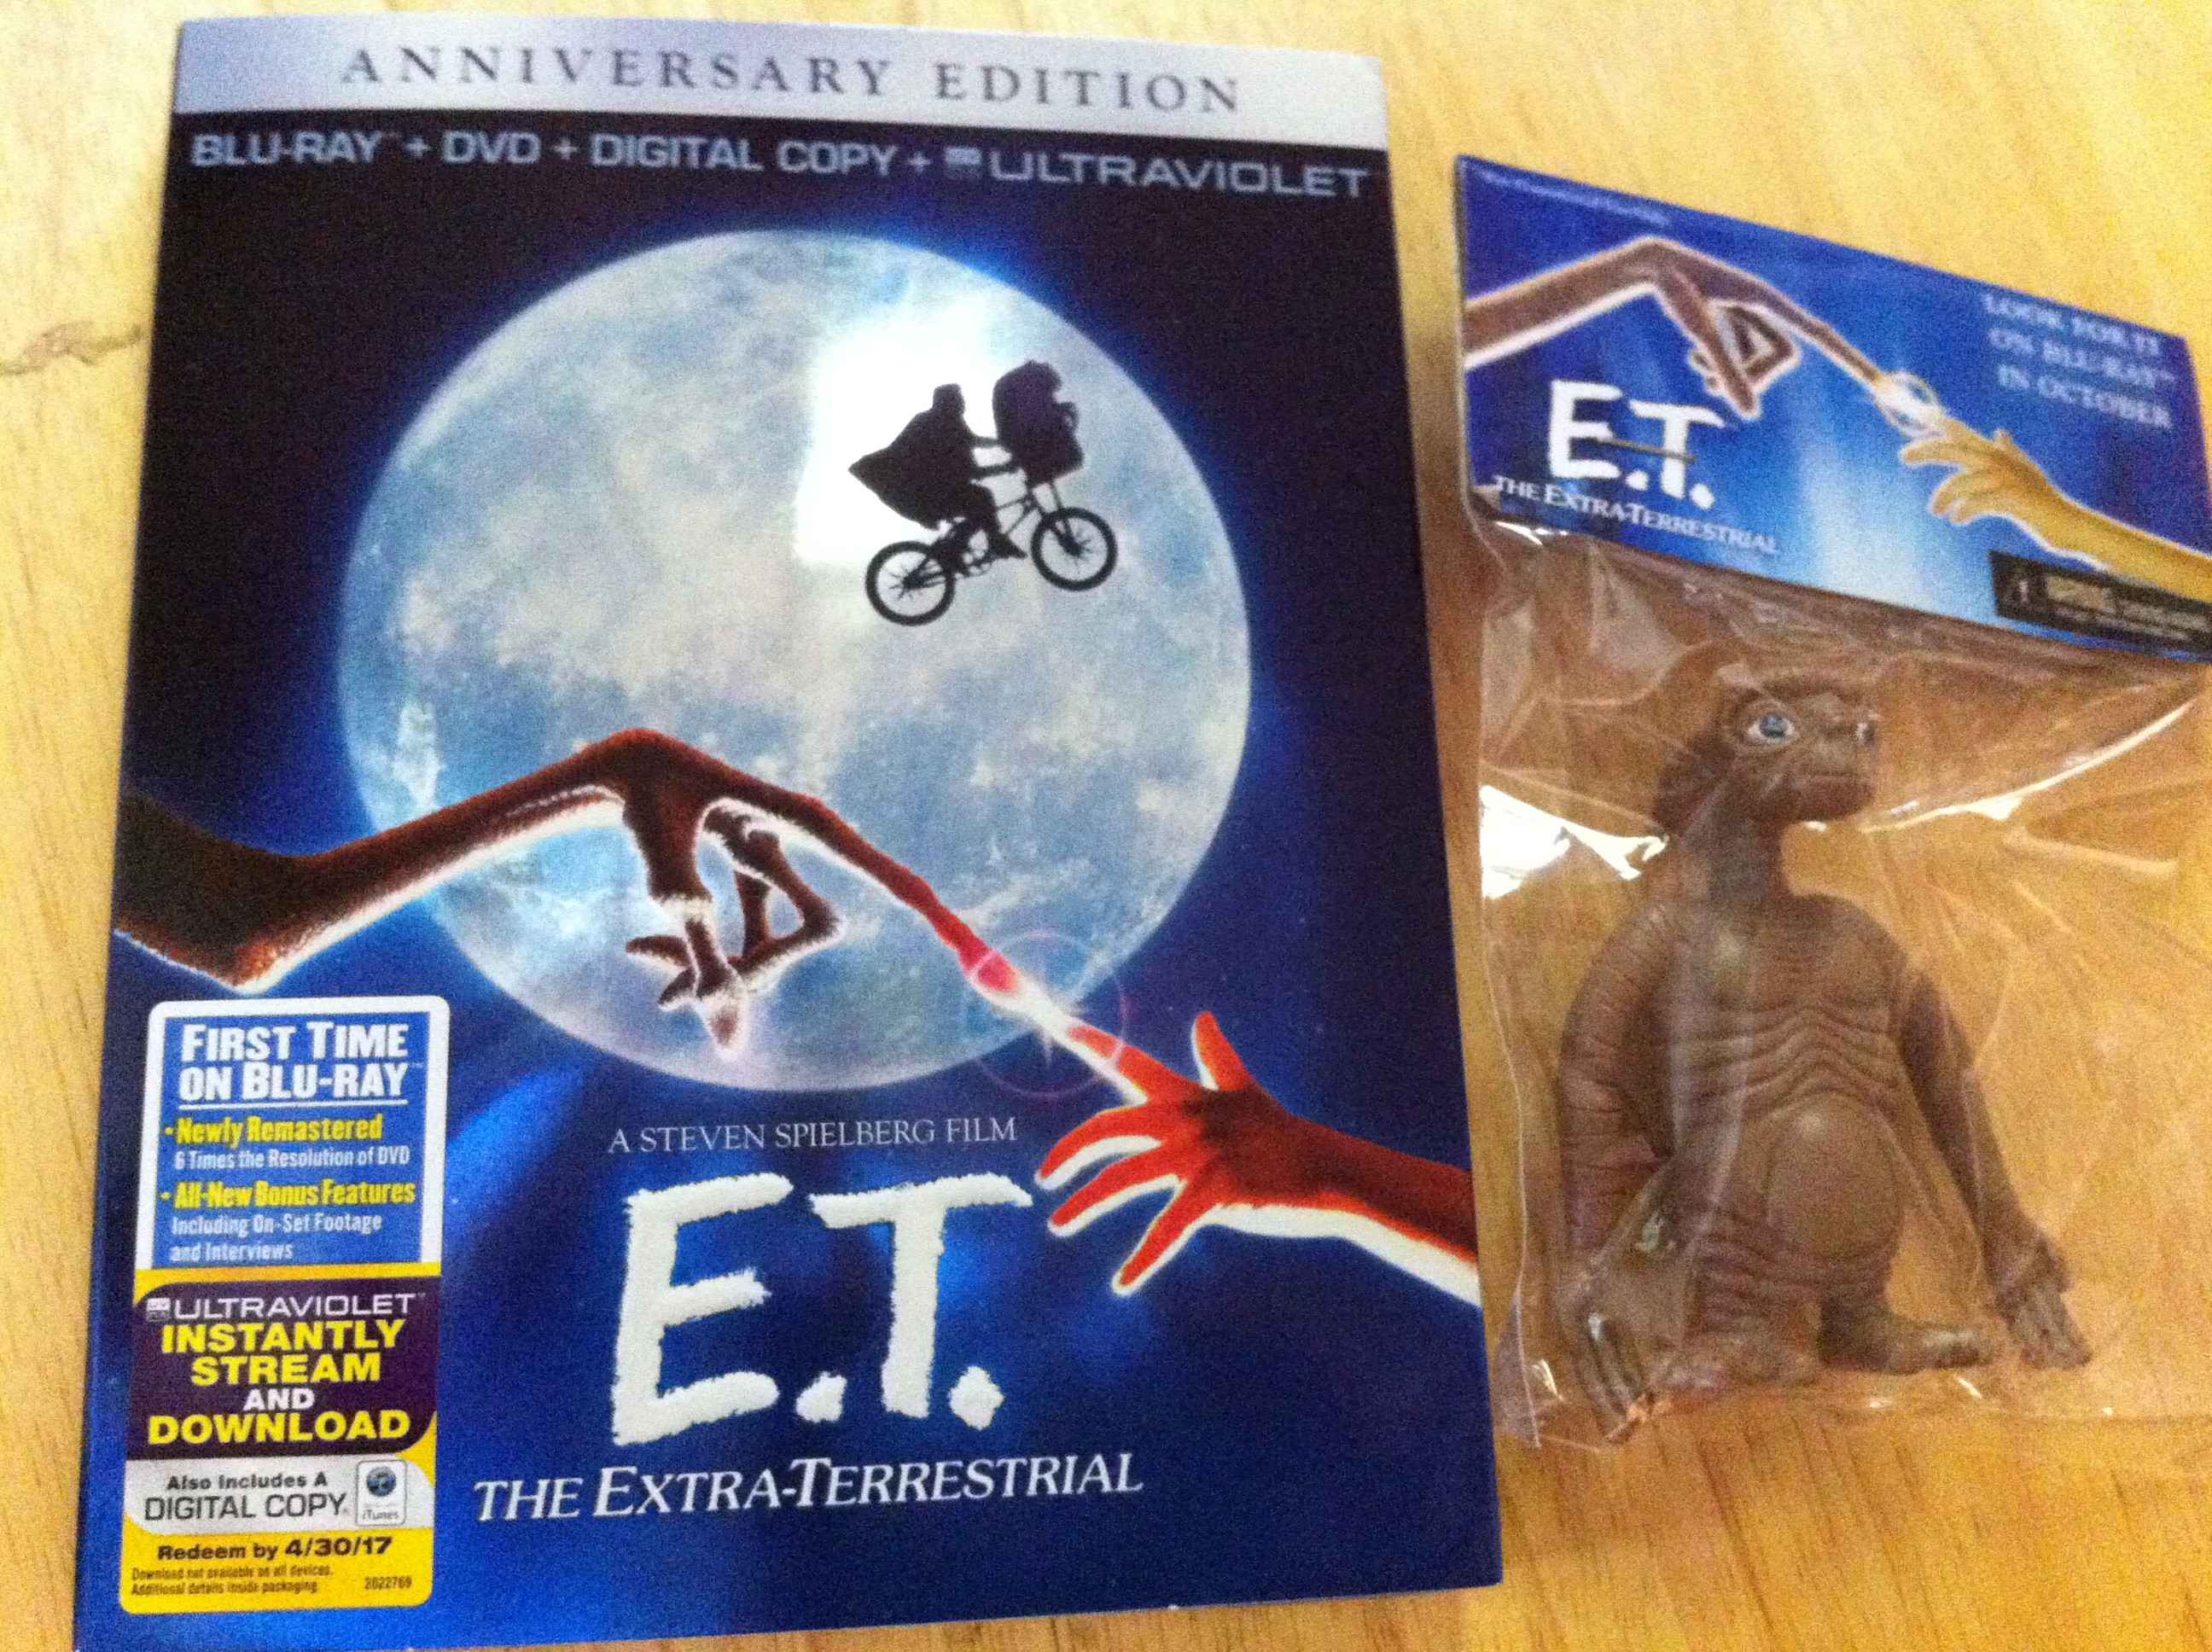 e.t. the extra terrestrial bluray box